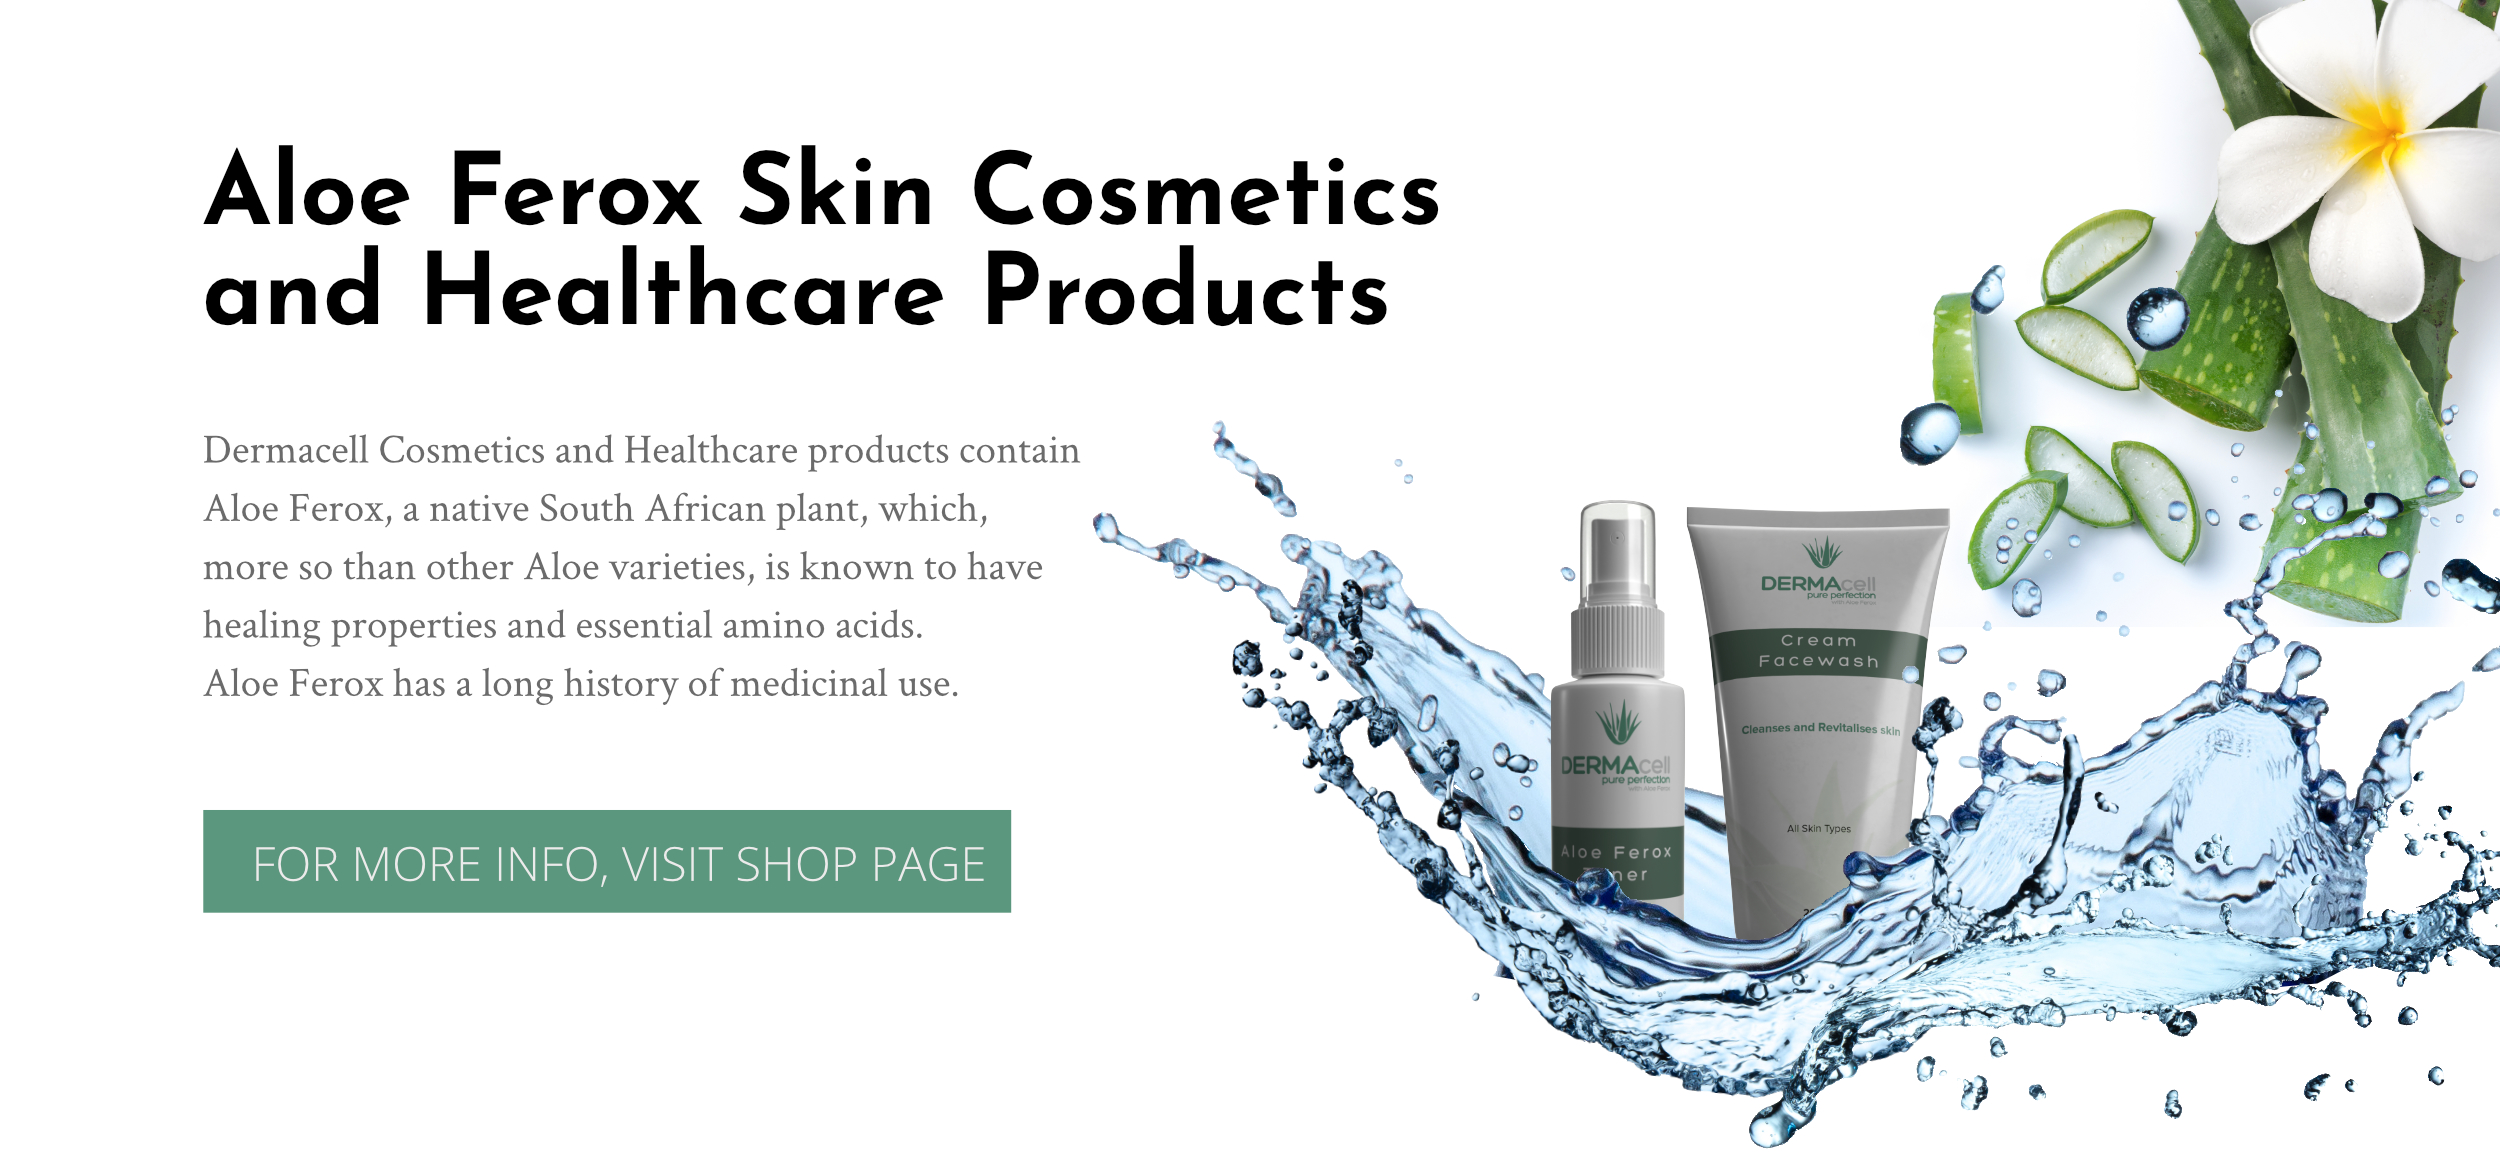 dermacell_cosmetics_and_skincare